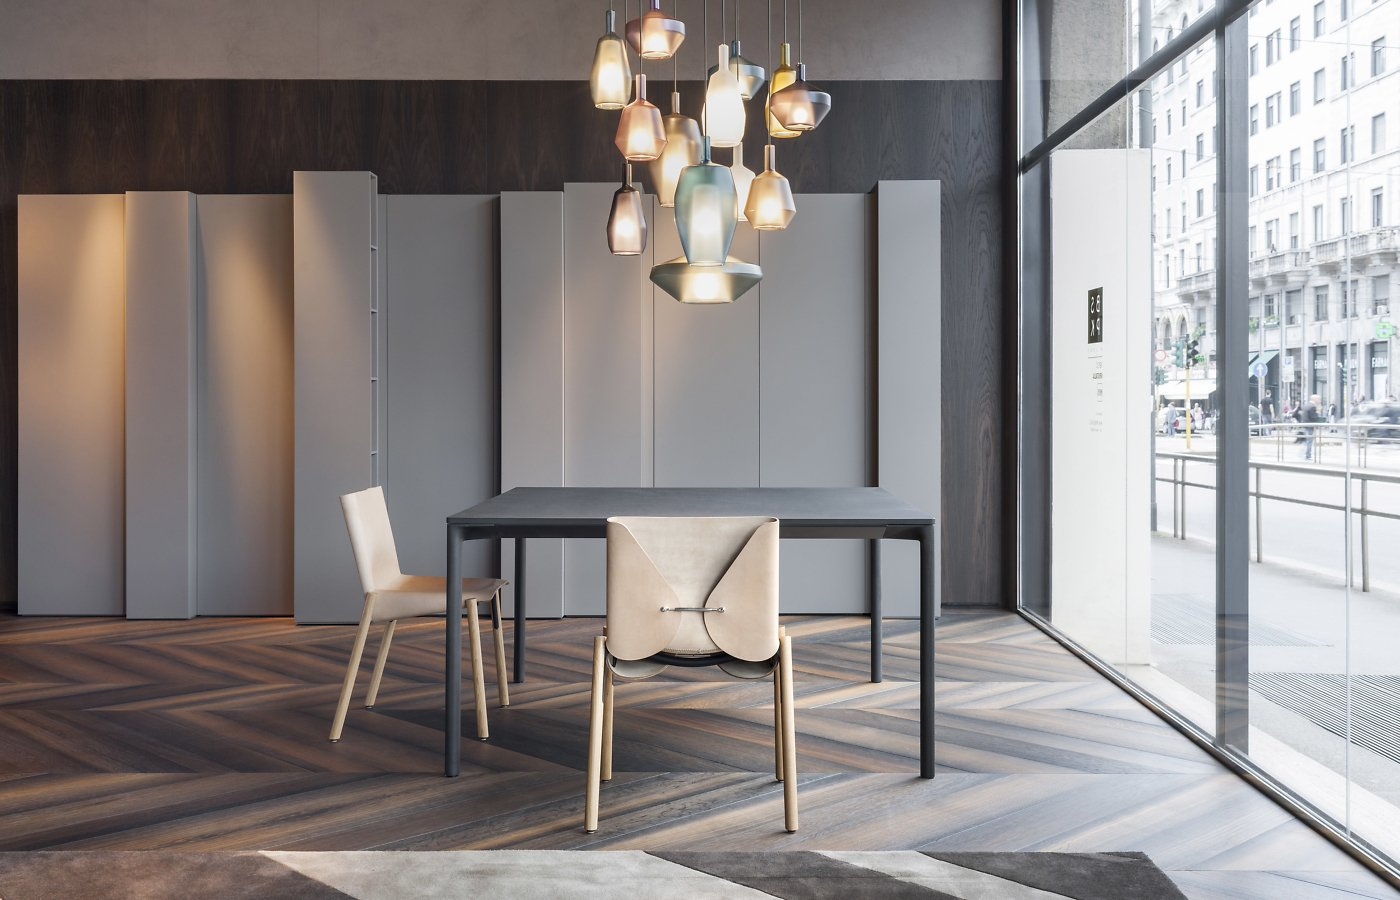 1085 Chair from Kristalia, designed by Bartoli Design